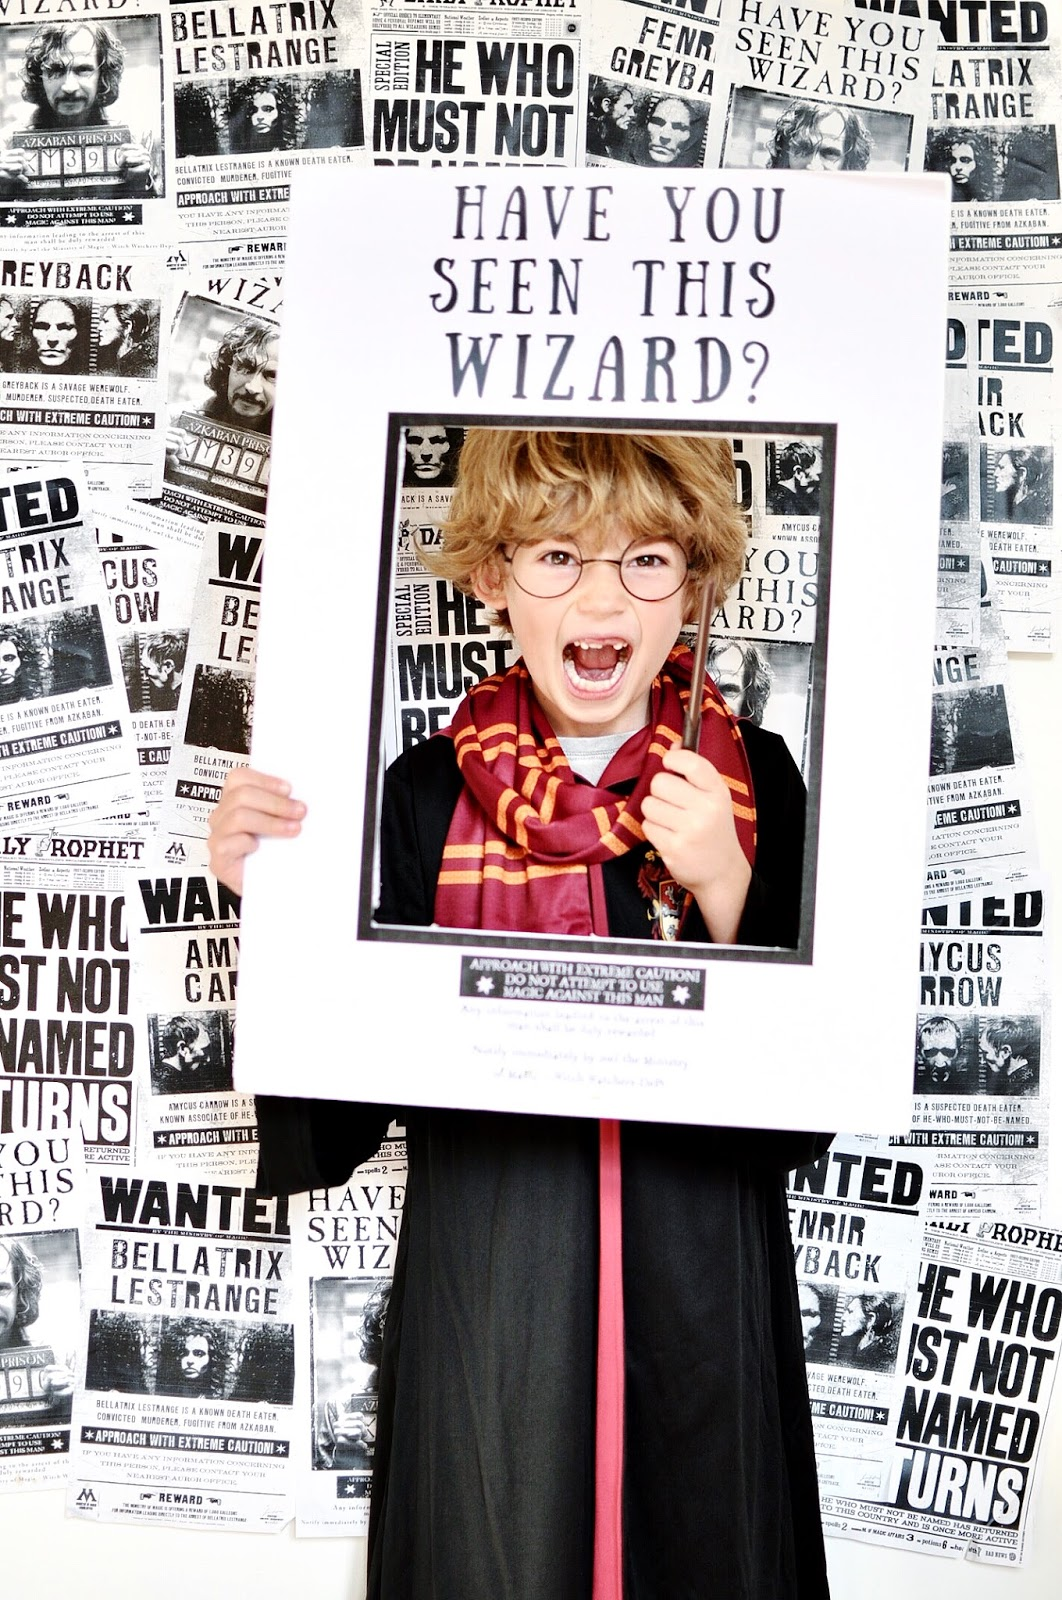 photo regarding Have You Seen This Wizard Printable named HOW Towards Application A HARRY POTTER BIRTHDAY Bash WILD GRIZZLY